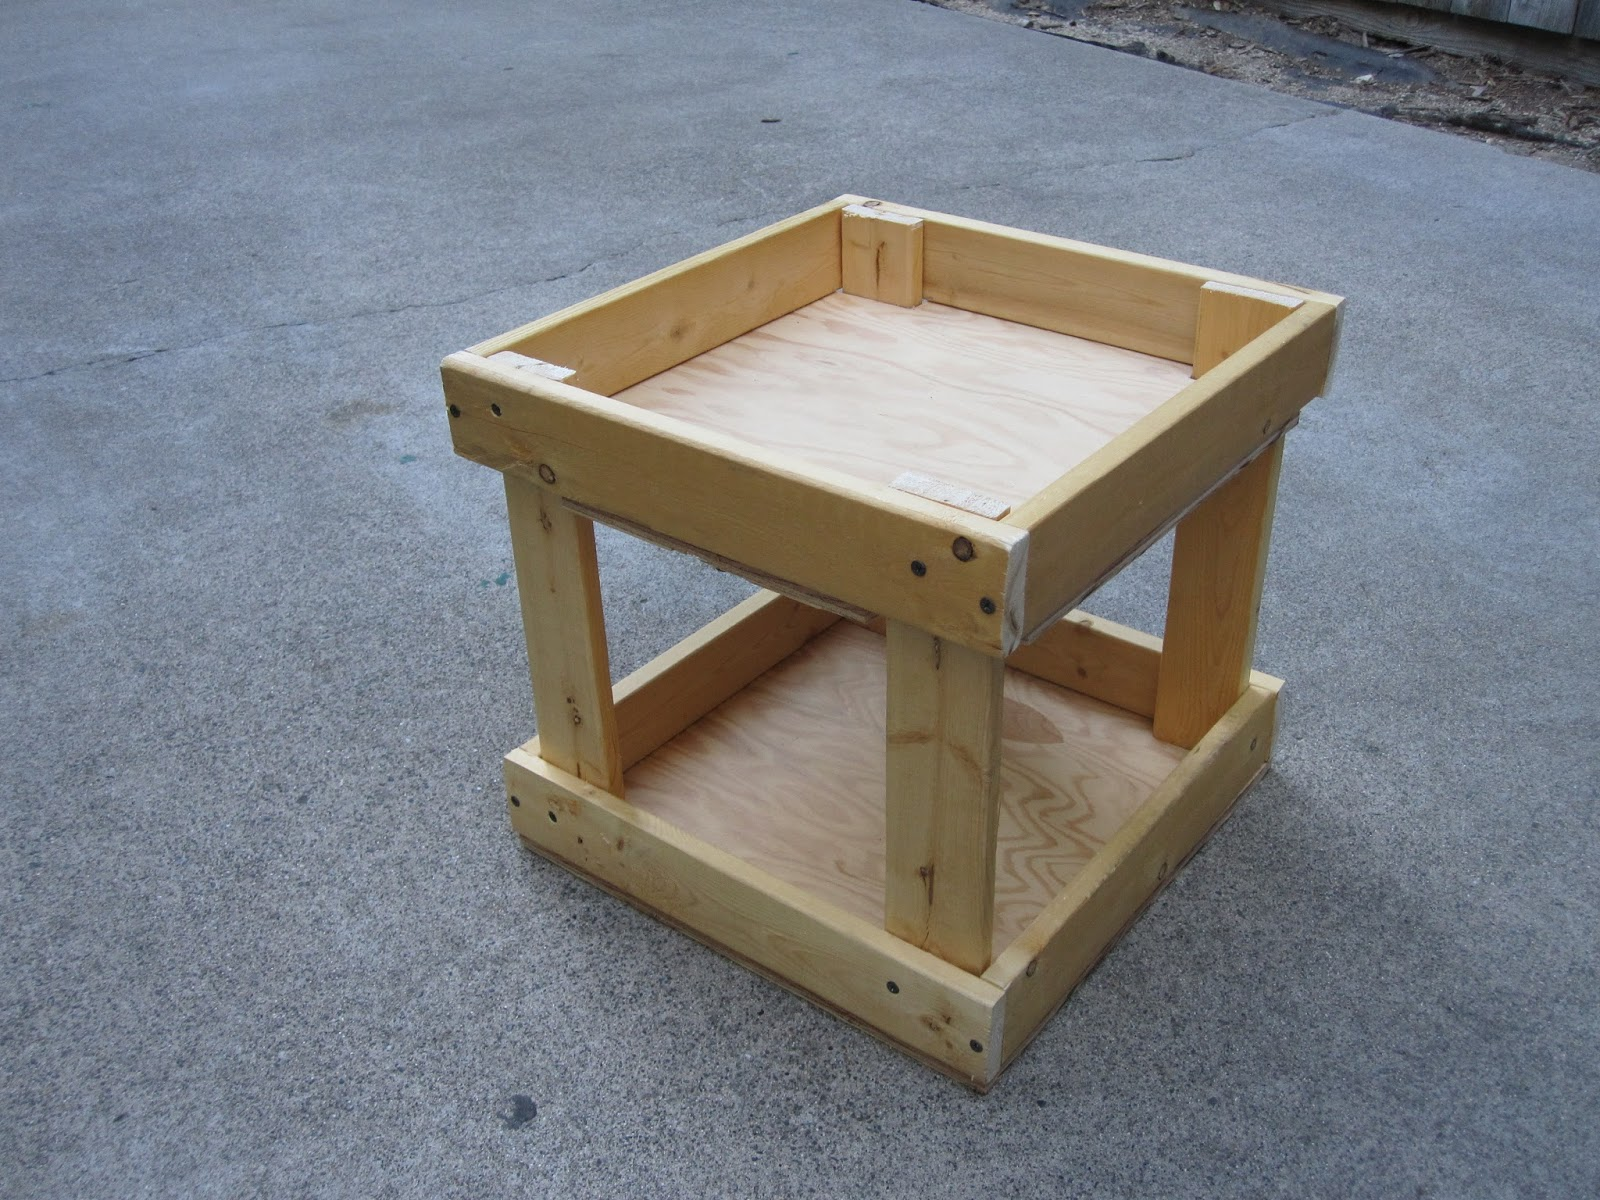 dual use furniture. Dual Use Car-caddy And Bed Support. Made From Leftover Plywood Some 1x3 Furrowing Strips. Furniture